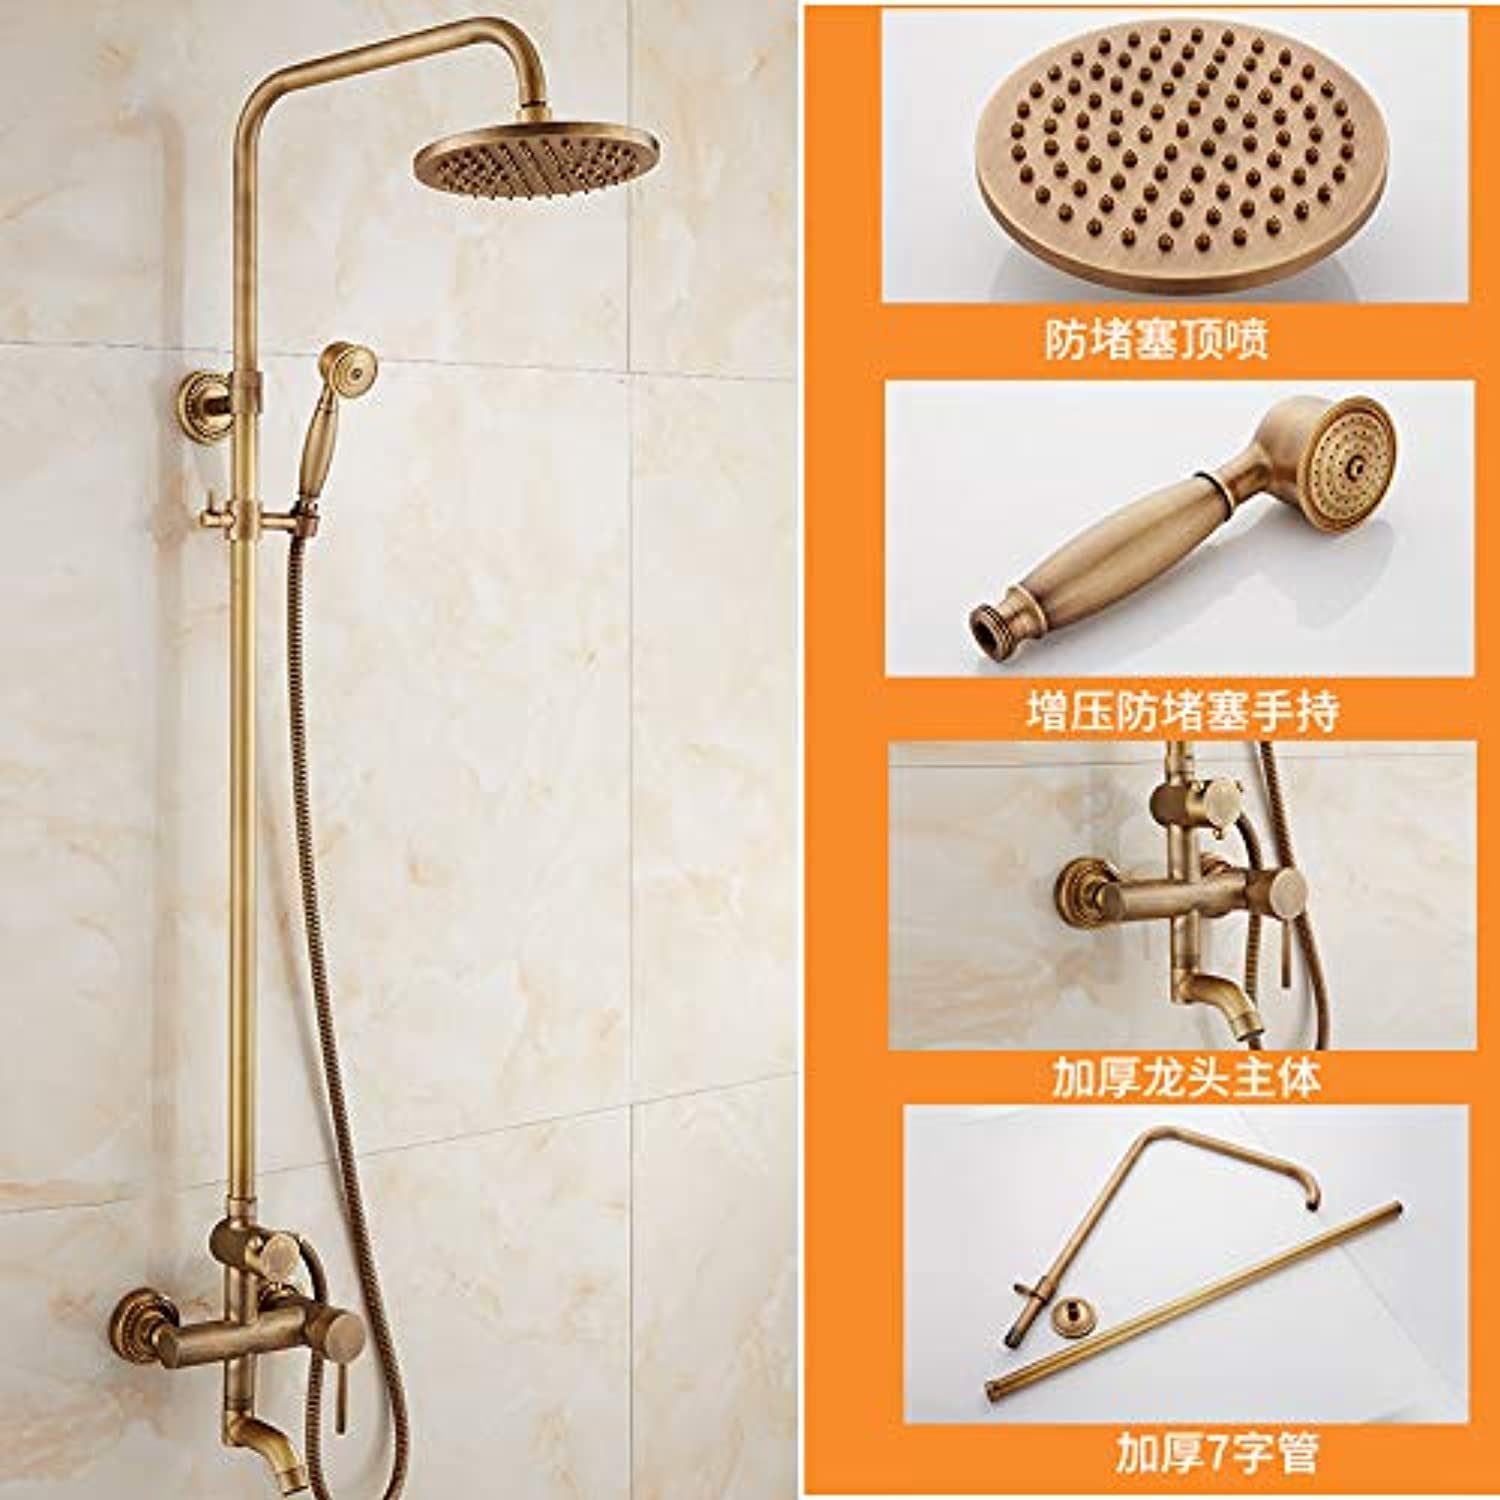 Antique Shower Set rain Shower Double Switch Head hot and Cold Water Faucet pressurized Copper Retro Shower A